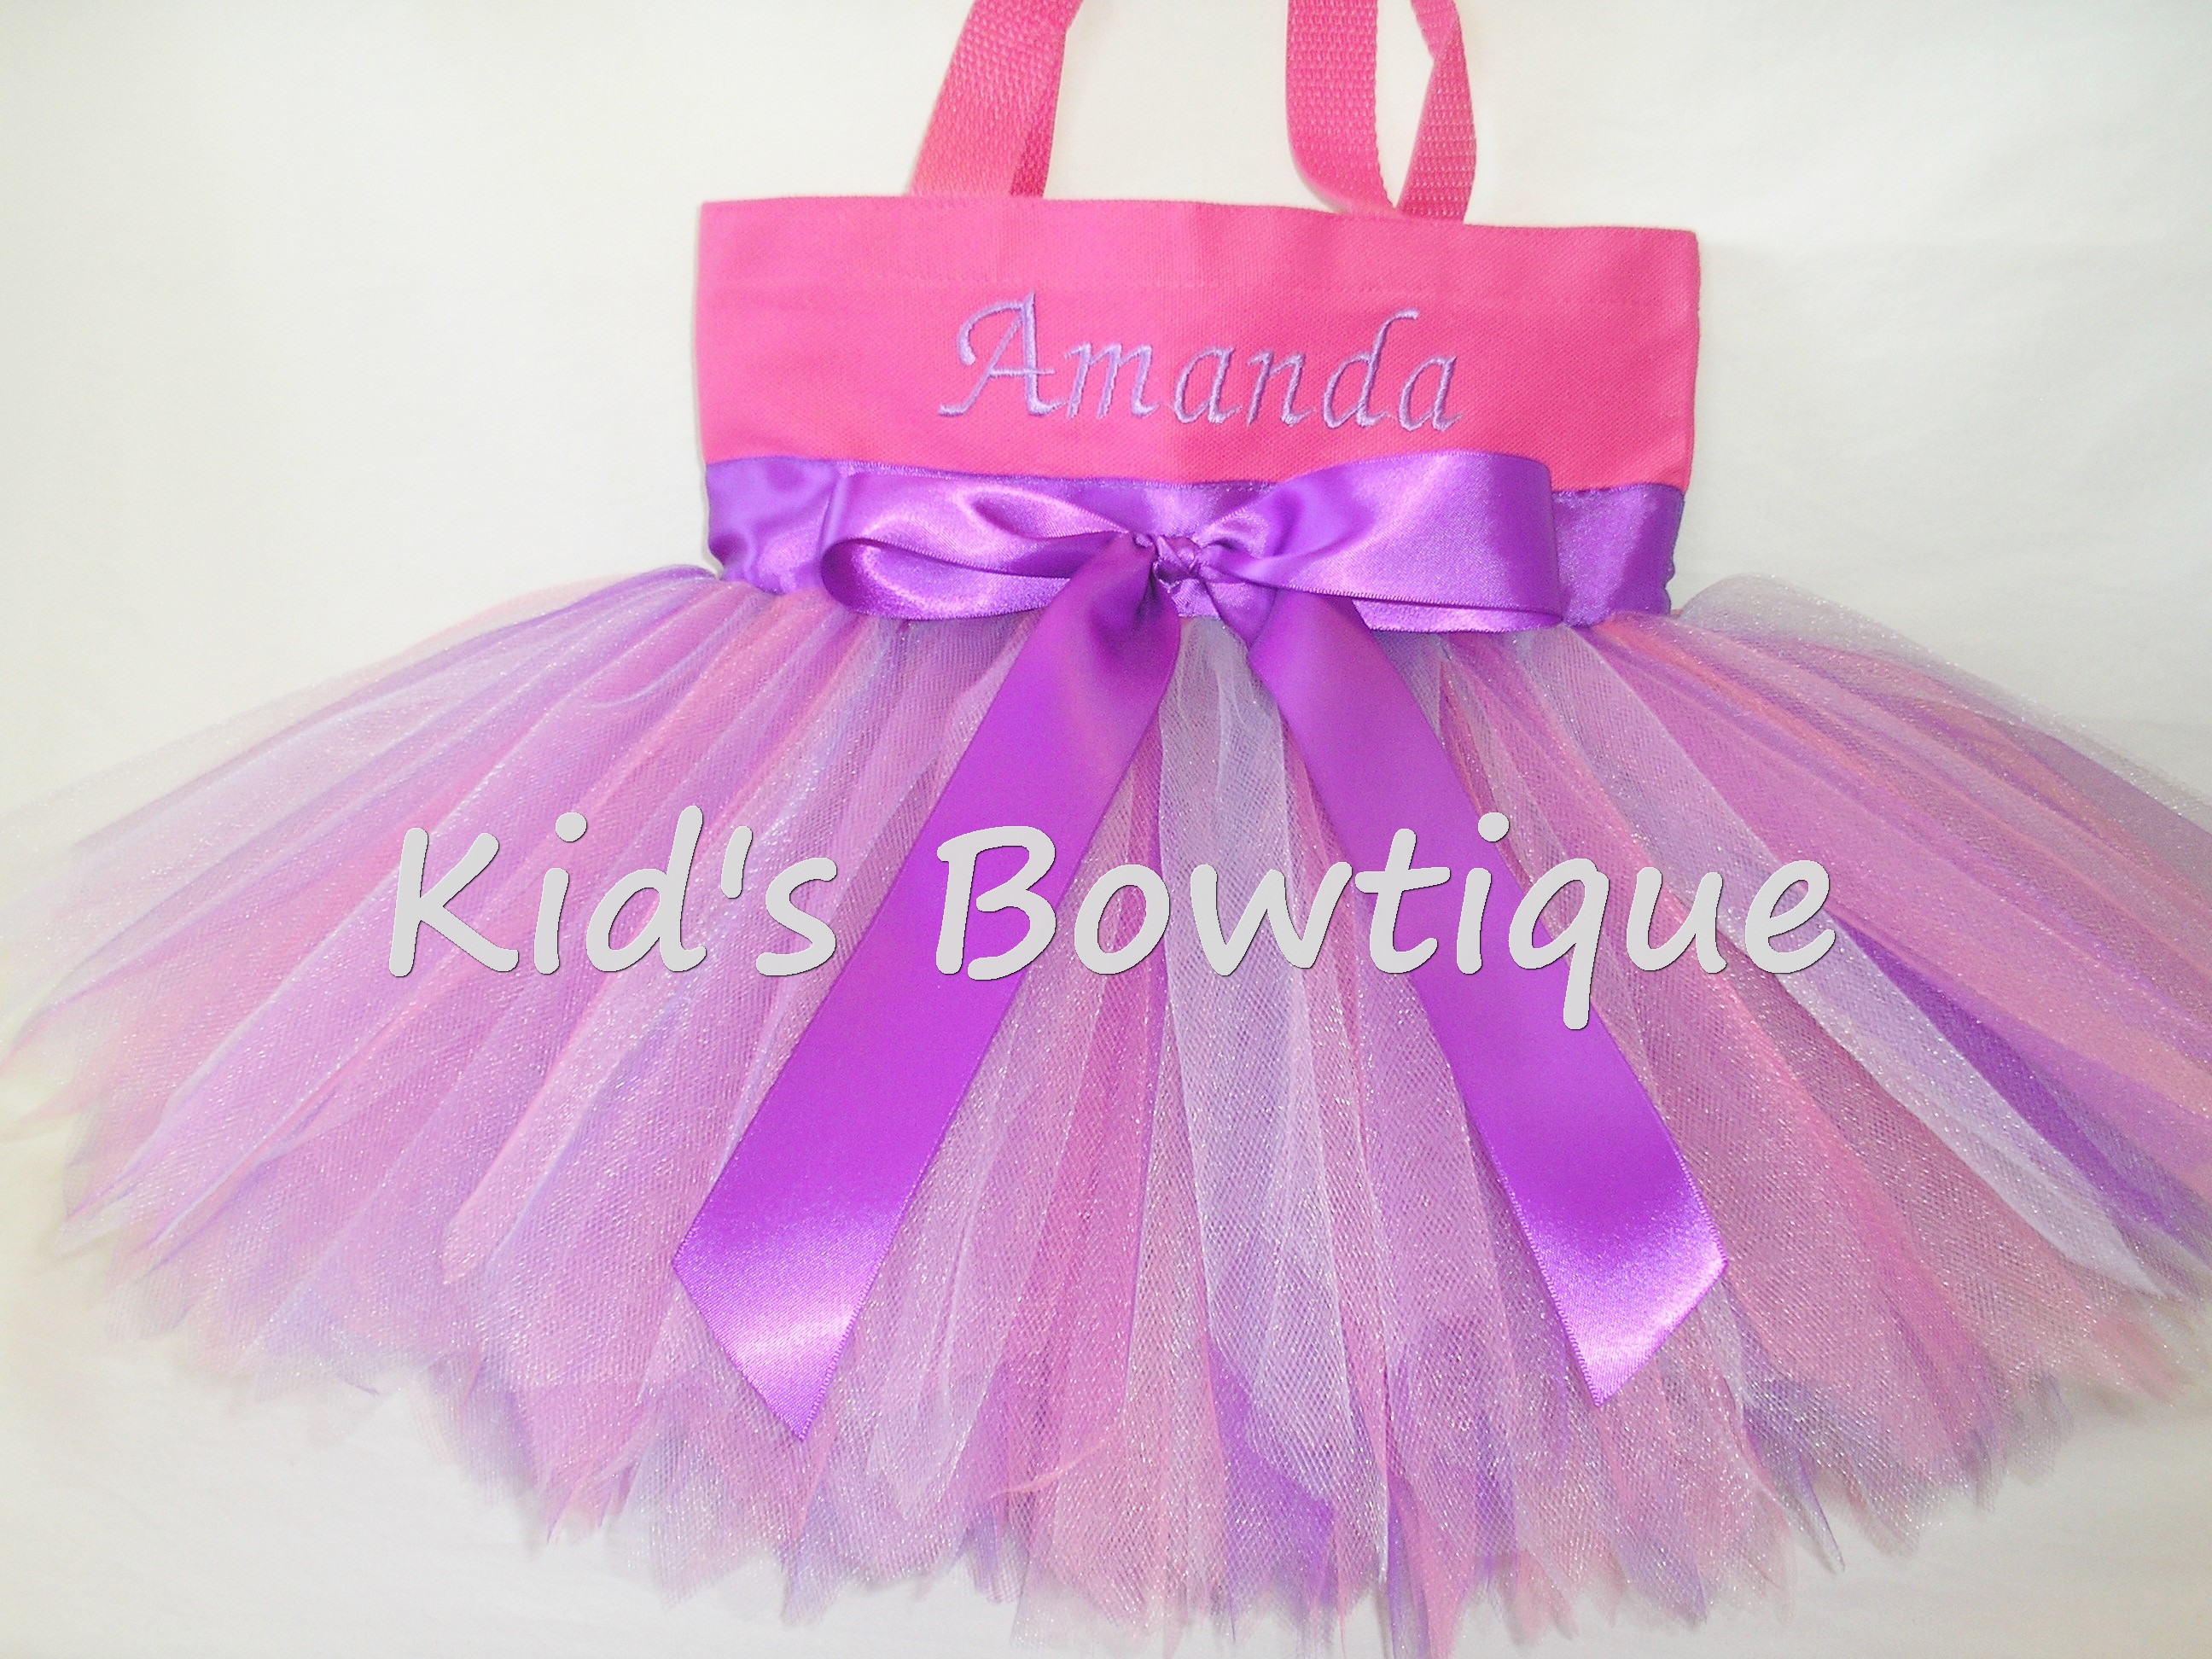 Monogrammed Tutu Tote Bag - ttb10 Pink with Purple Bow